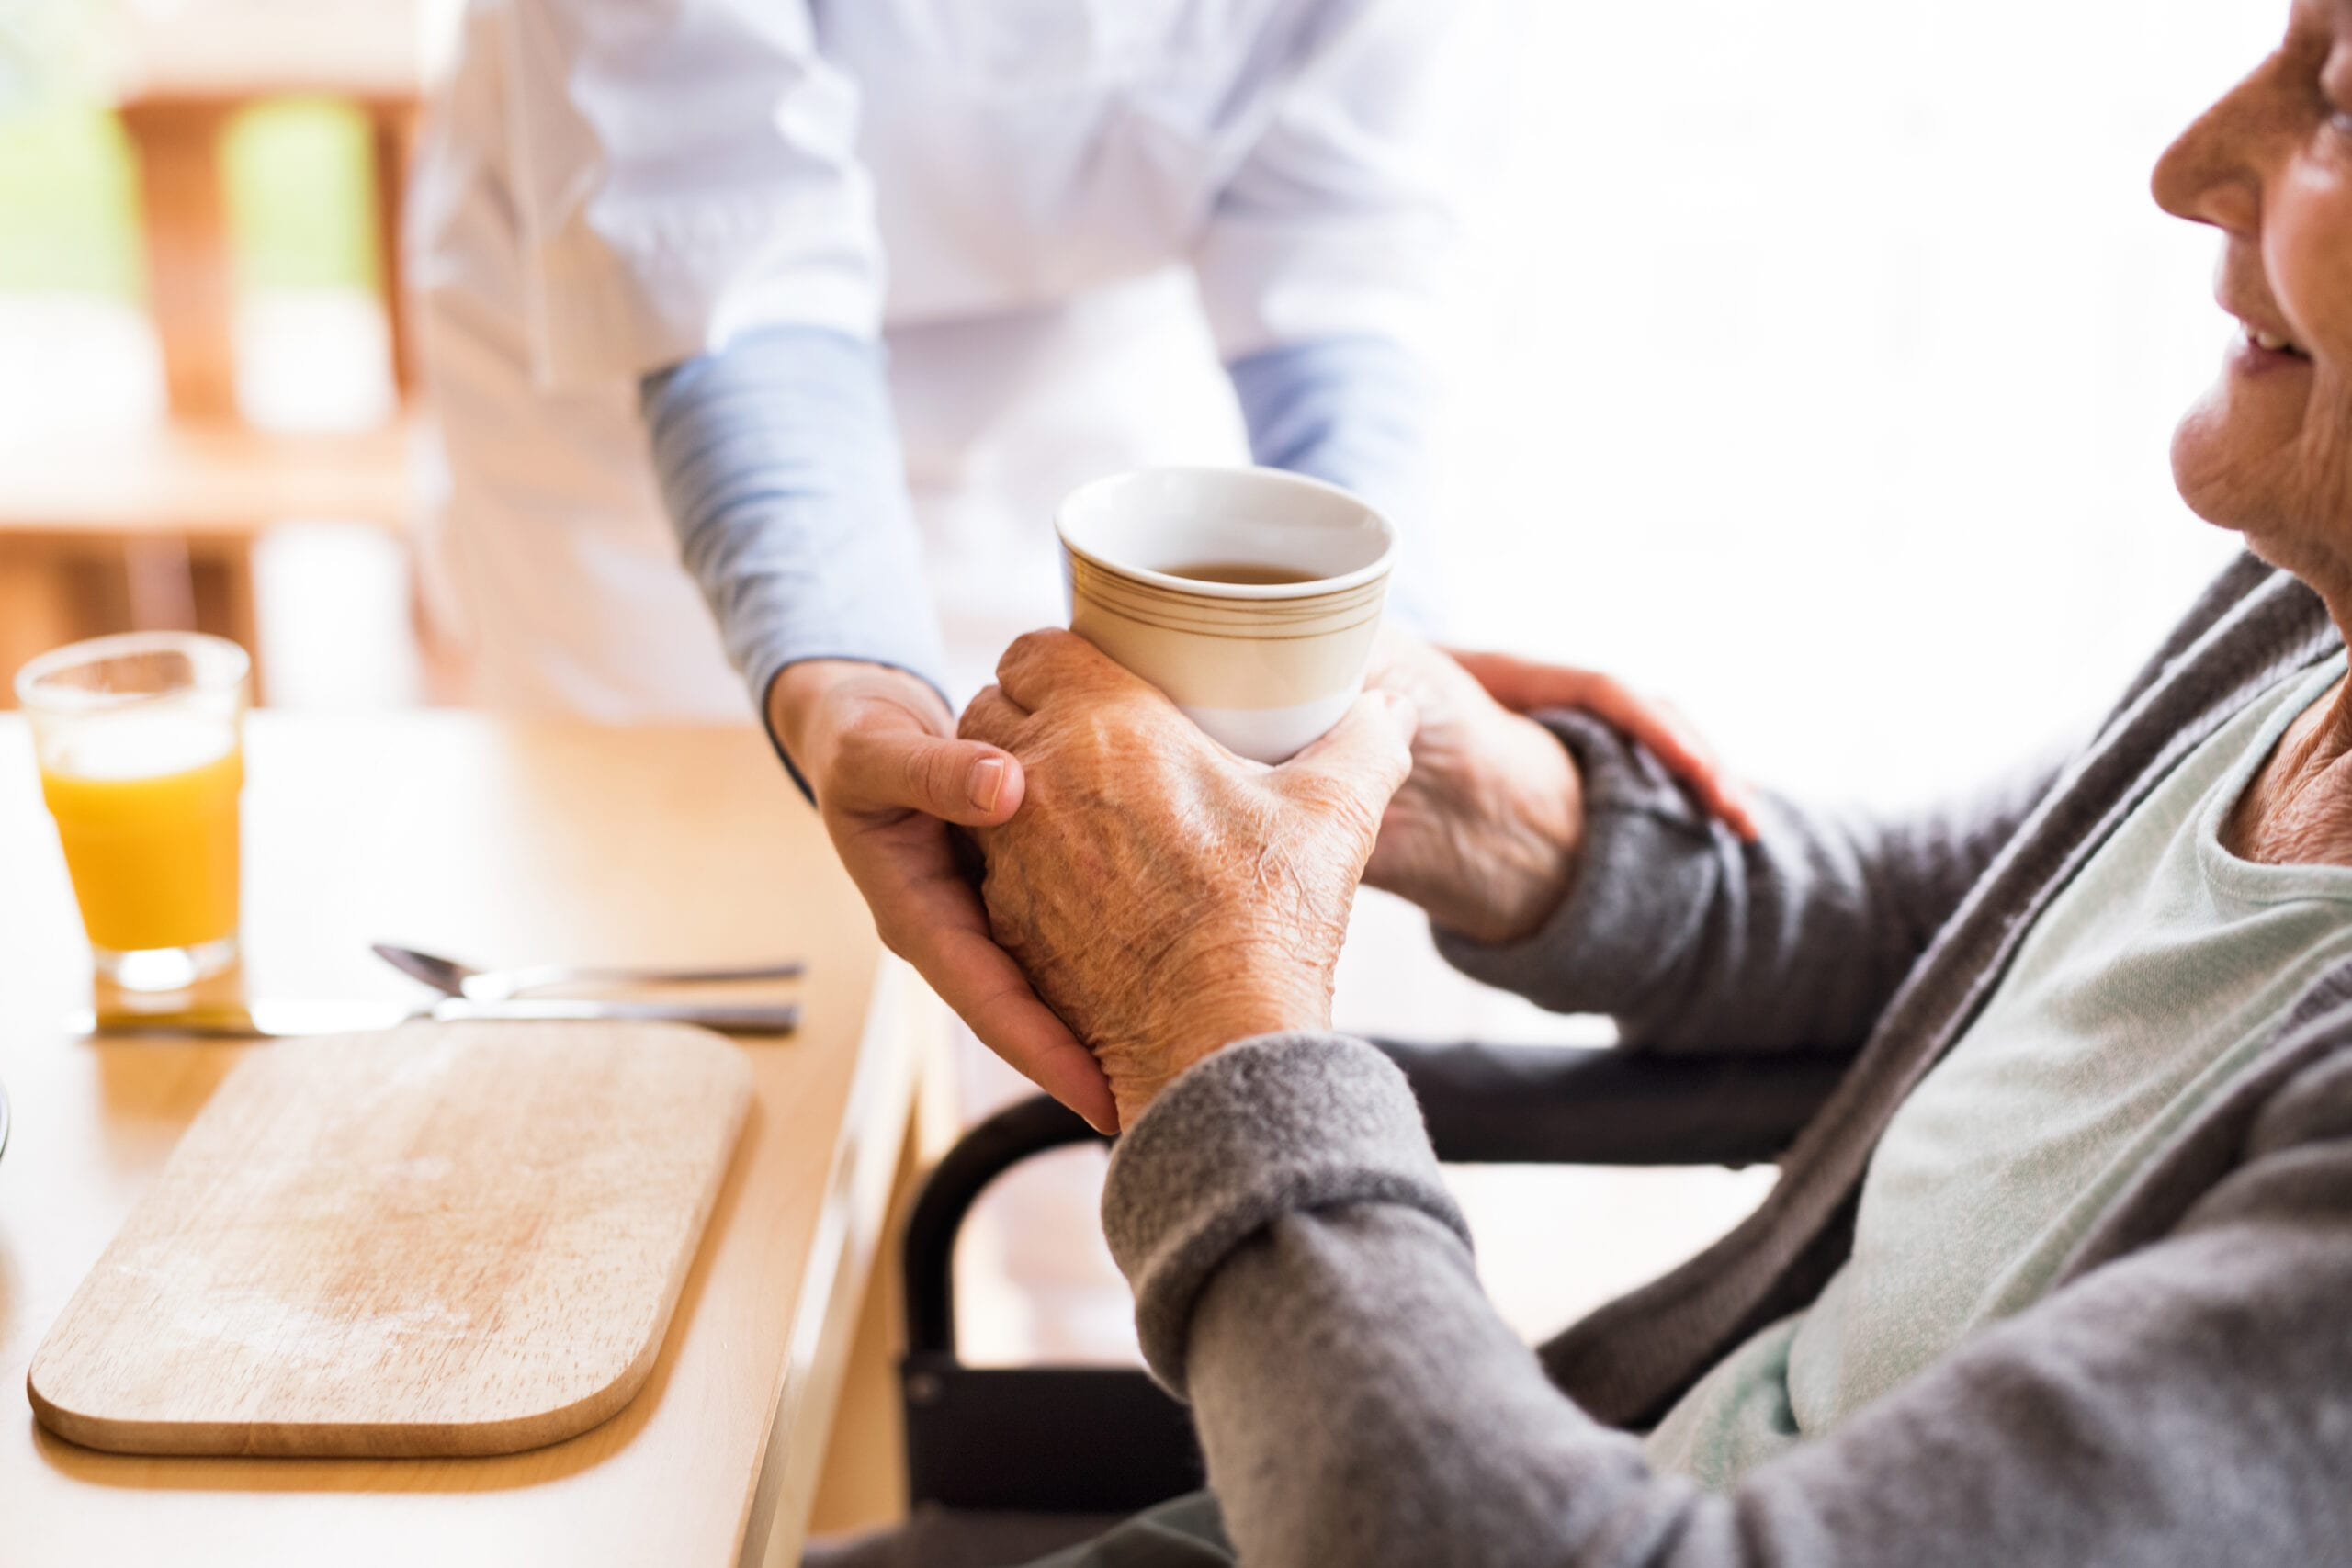 Caregiver assisting an elderly person with a cup of coffee